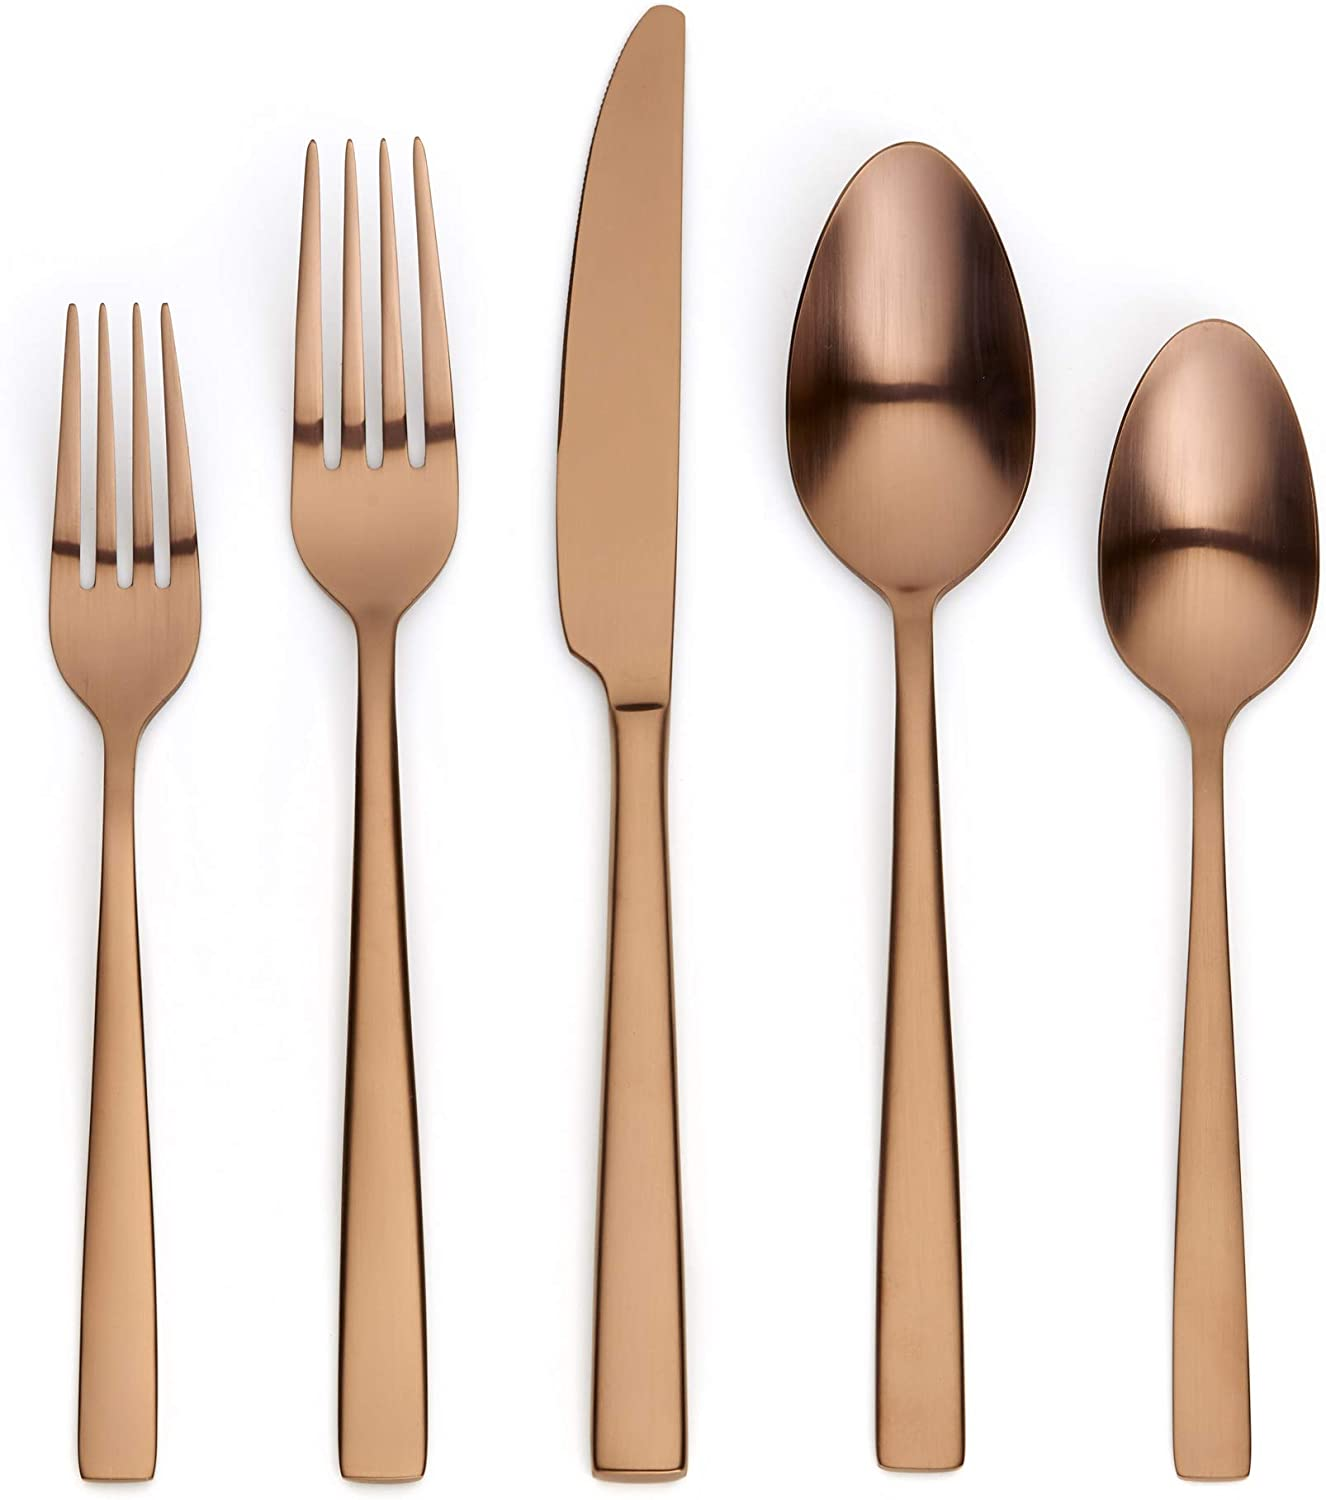 Ornative Kathryn 20-Piece Stainless Steel Flatware Set| Silverware Set for 4| Copper | Includes Forks, Knives, and Spoons |Dishwasher Safe |Durable and Easy Care| Best Silverware